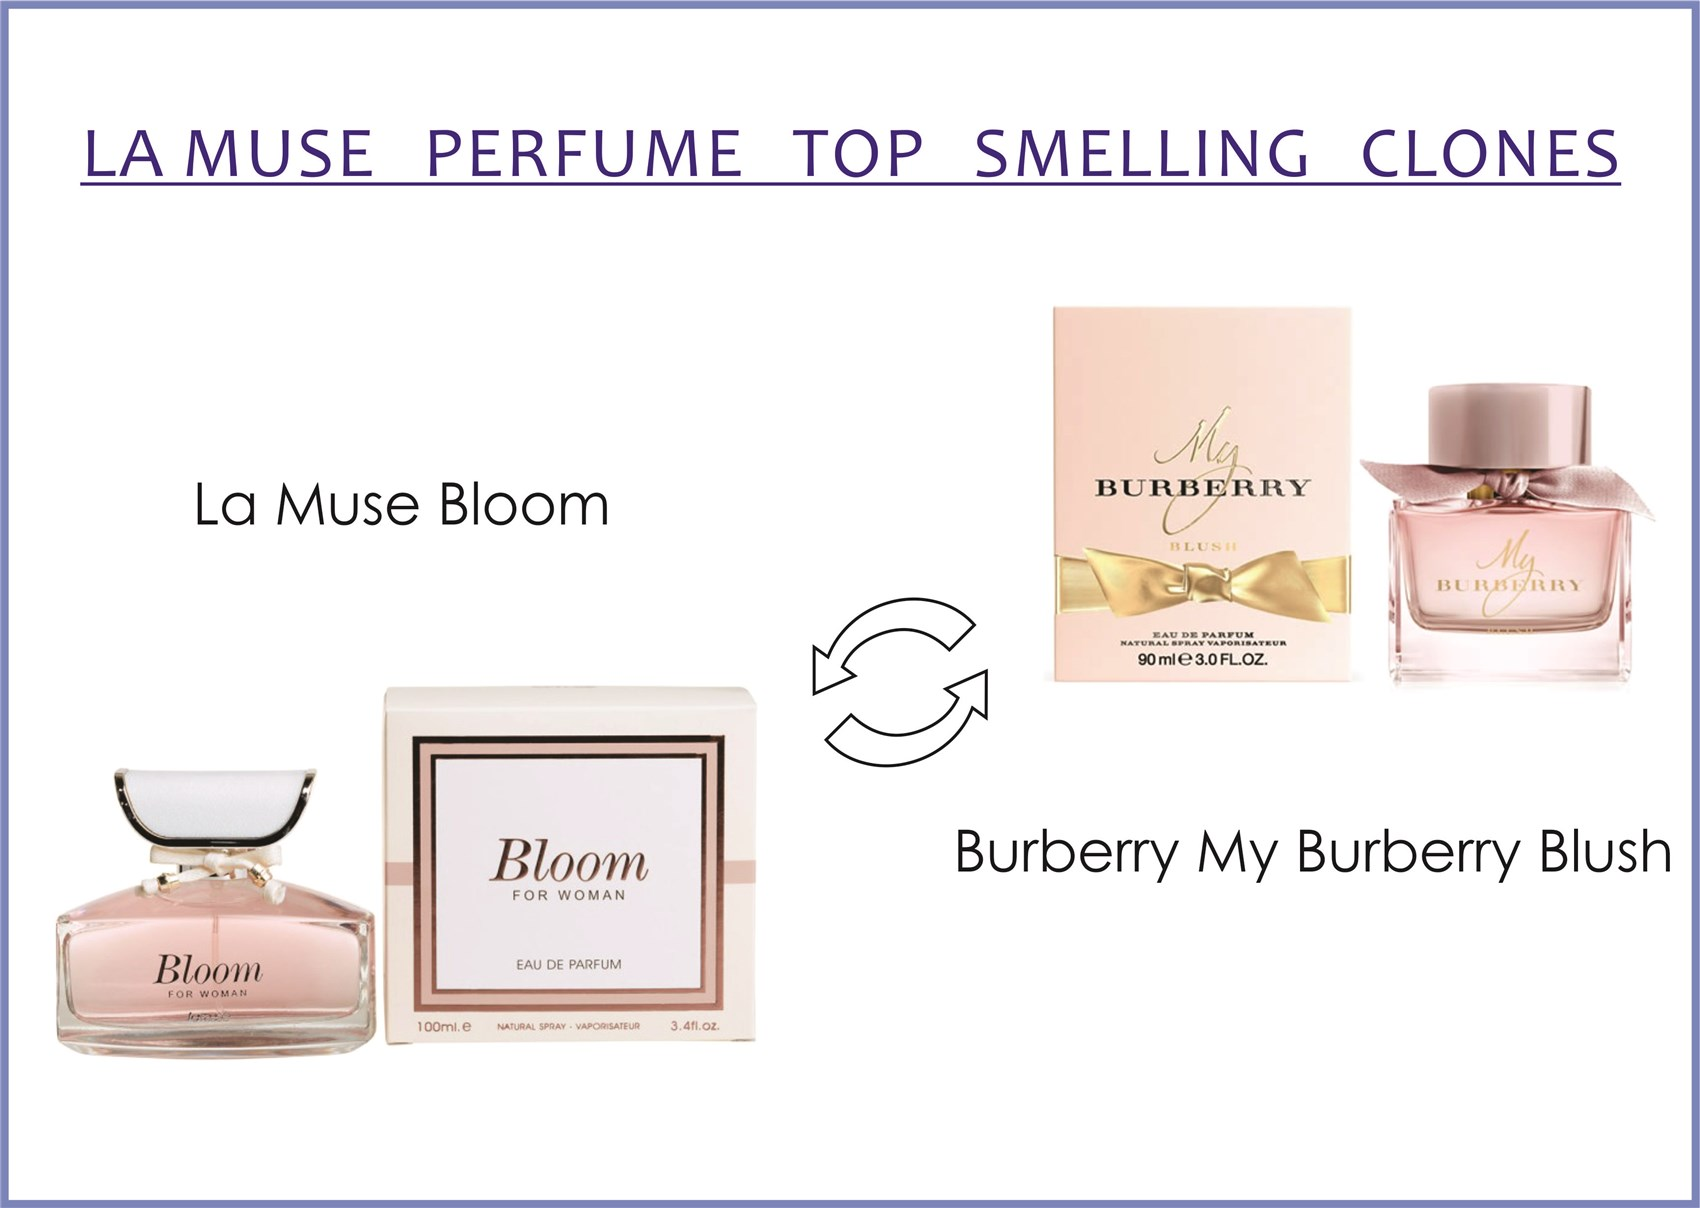 burberry-my-burberry-blush-for-women-90-ml-edp-la-muse-bloom-perfume